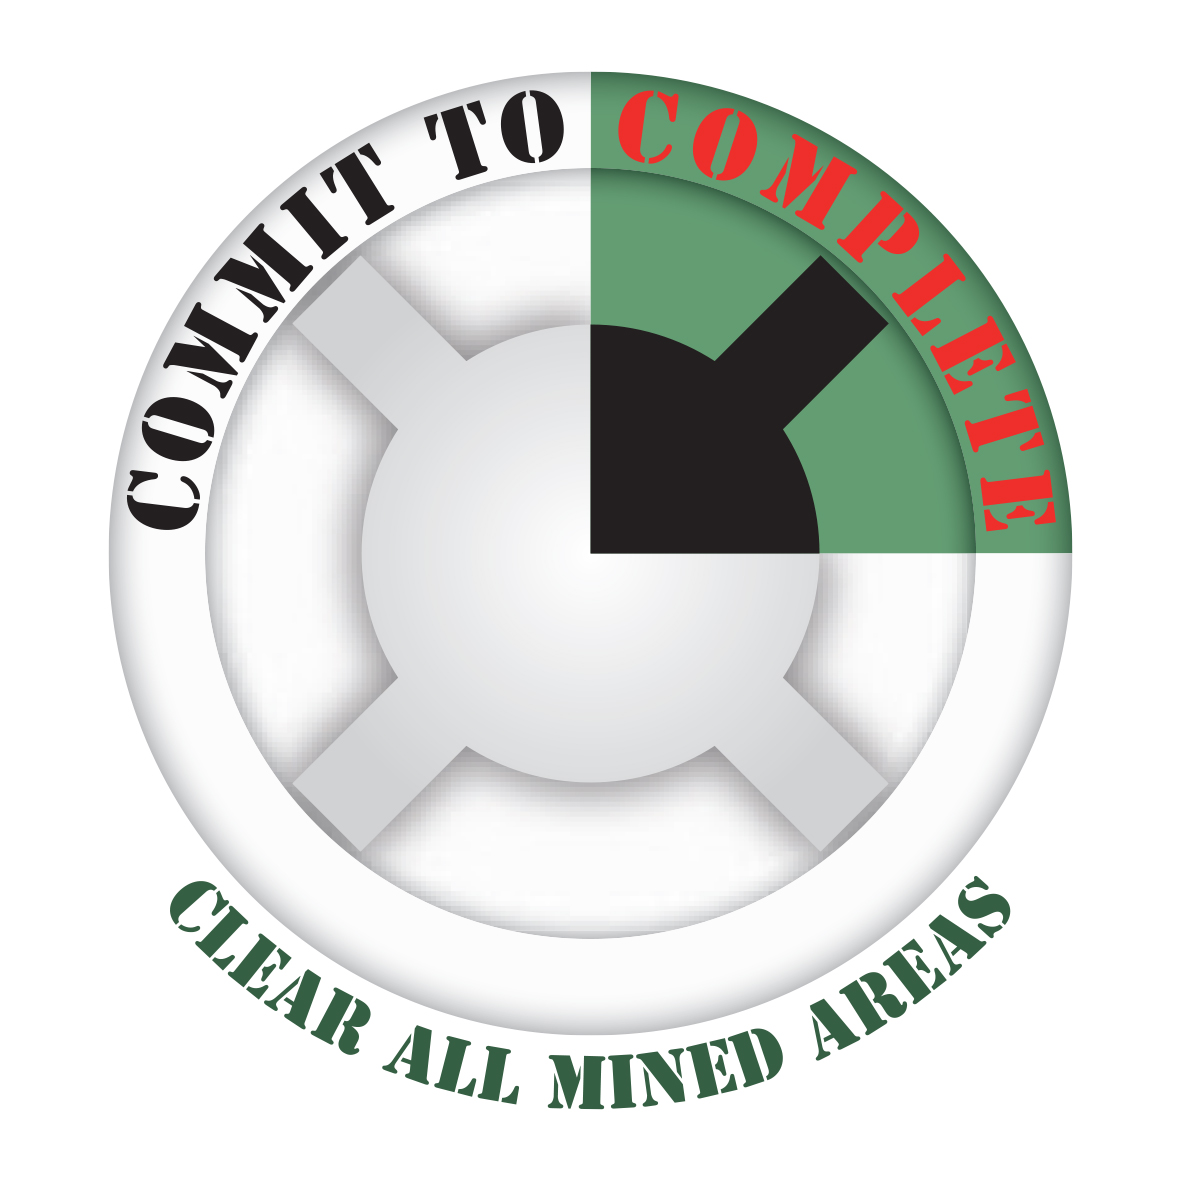 clear all mined areas